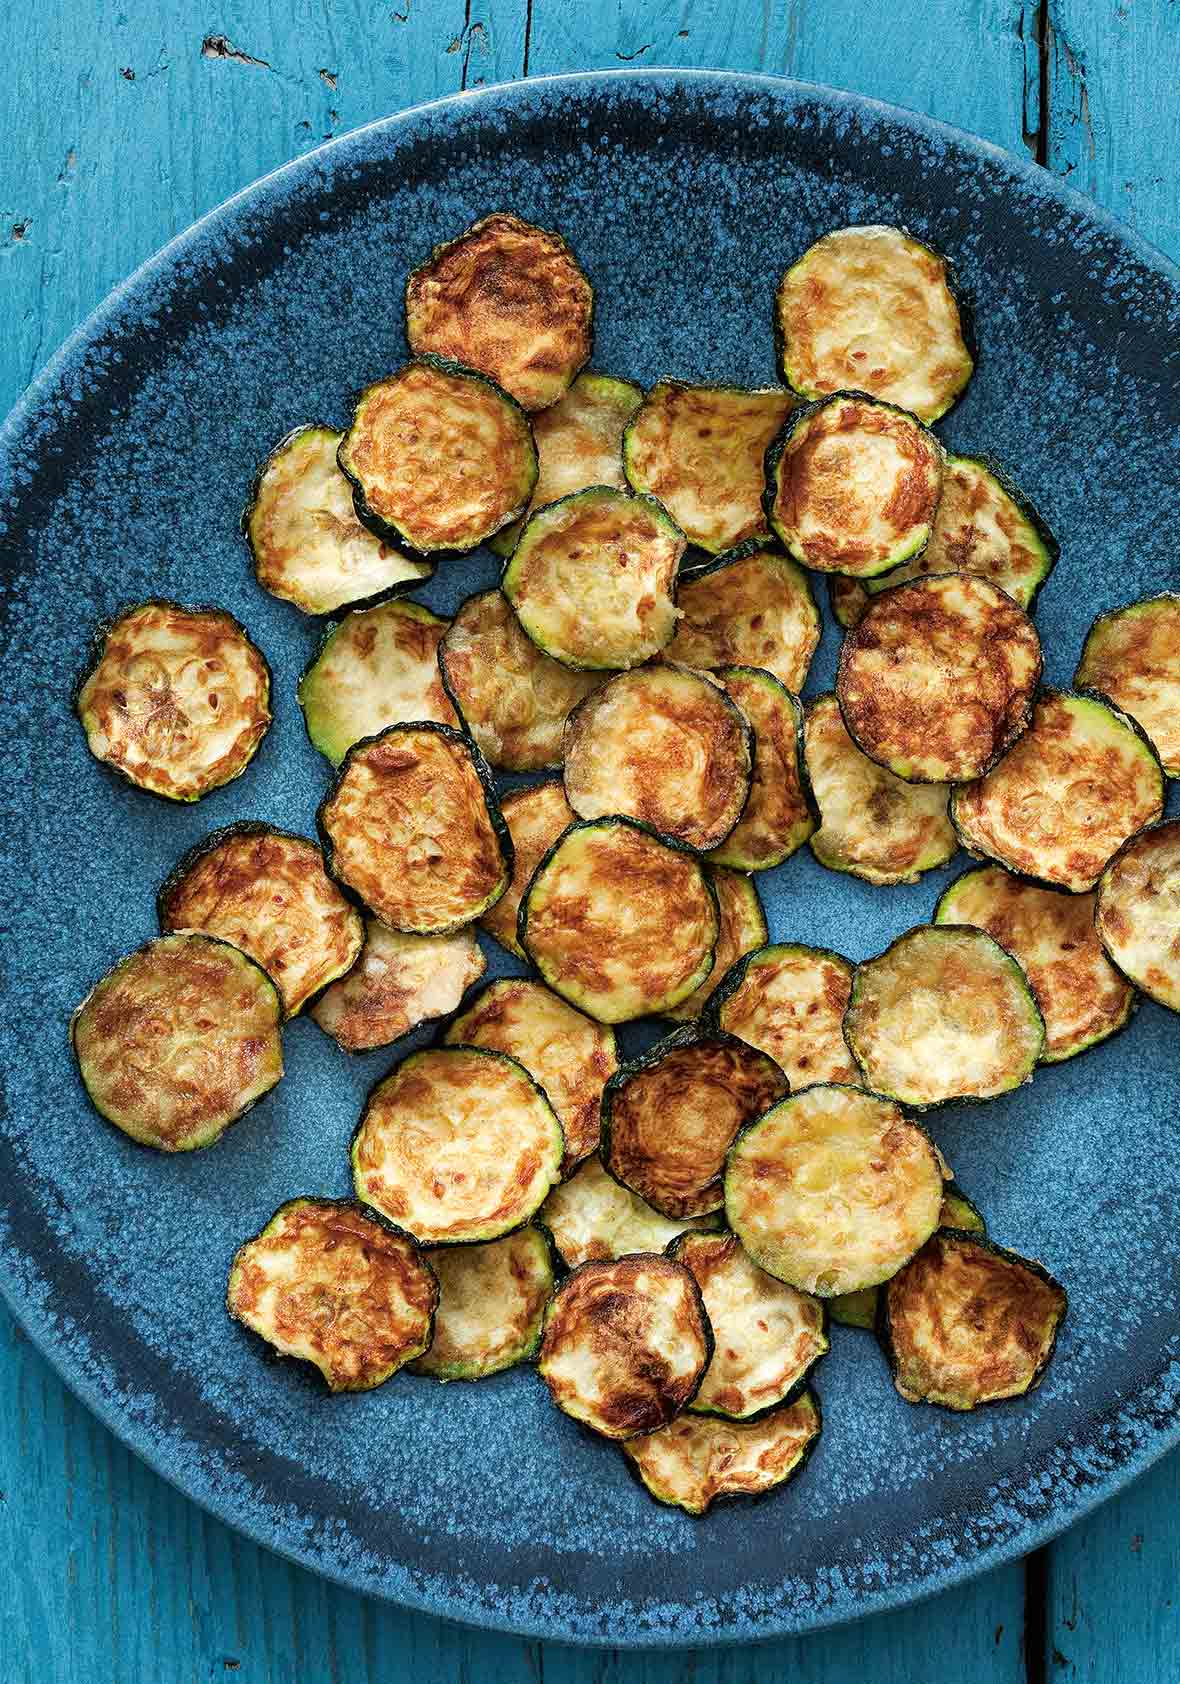 A blue plate filled with slices of zucchini crisps.